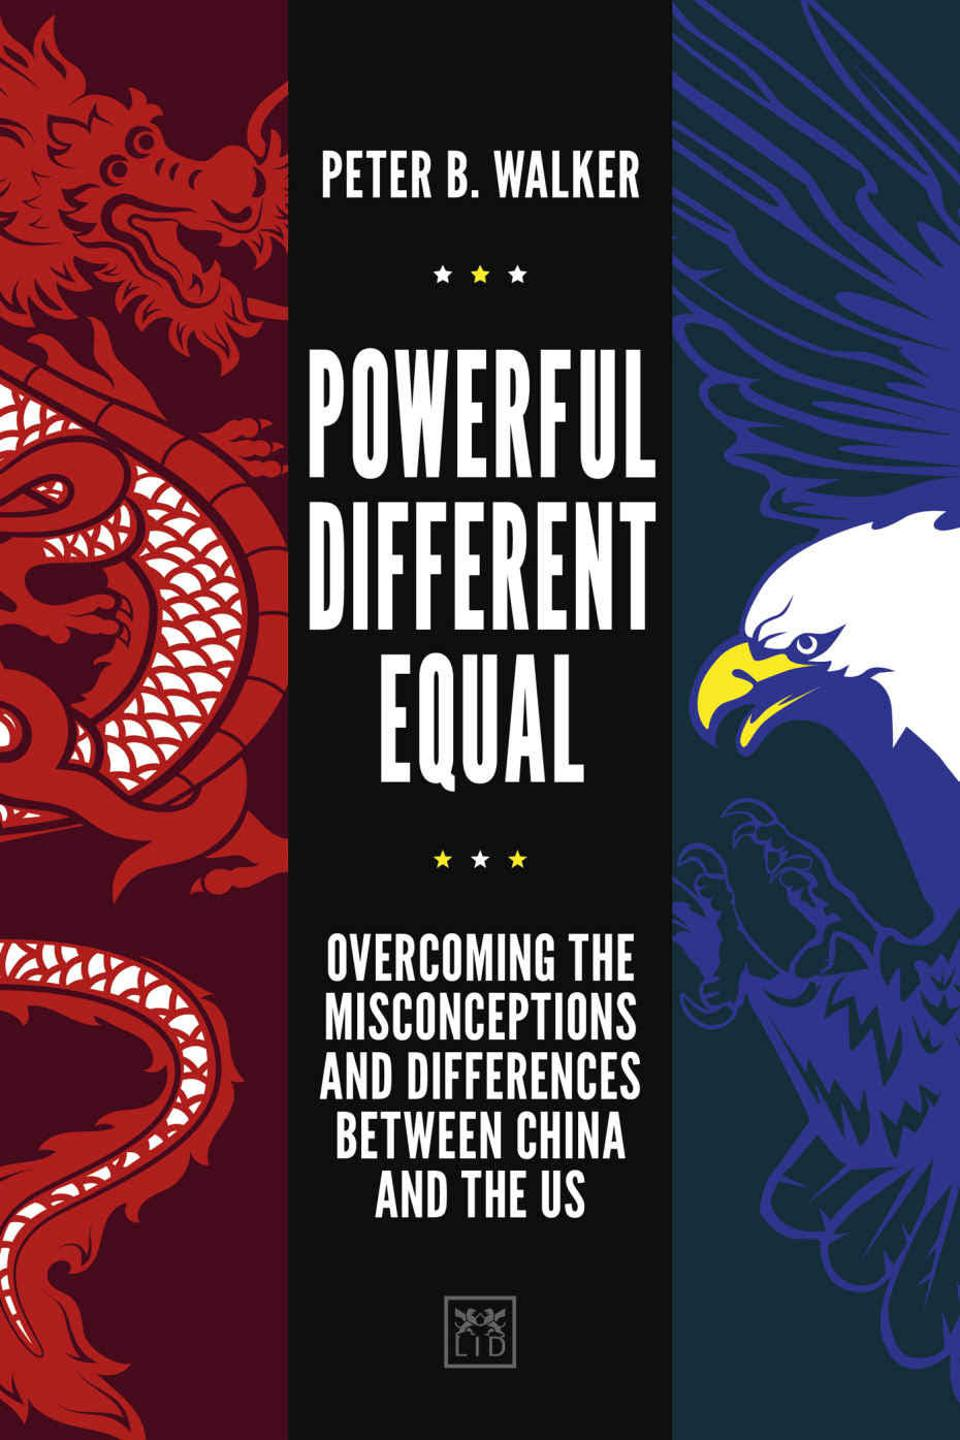 ″Powerful, Different, Equal: Overcoming the Misconceptions and Differences Between China and the US″